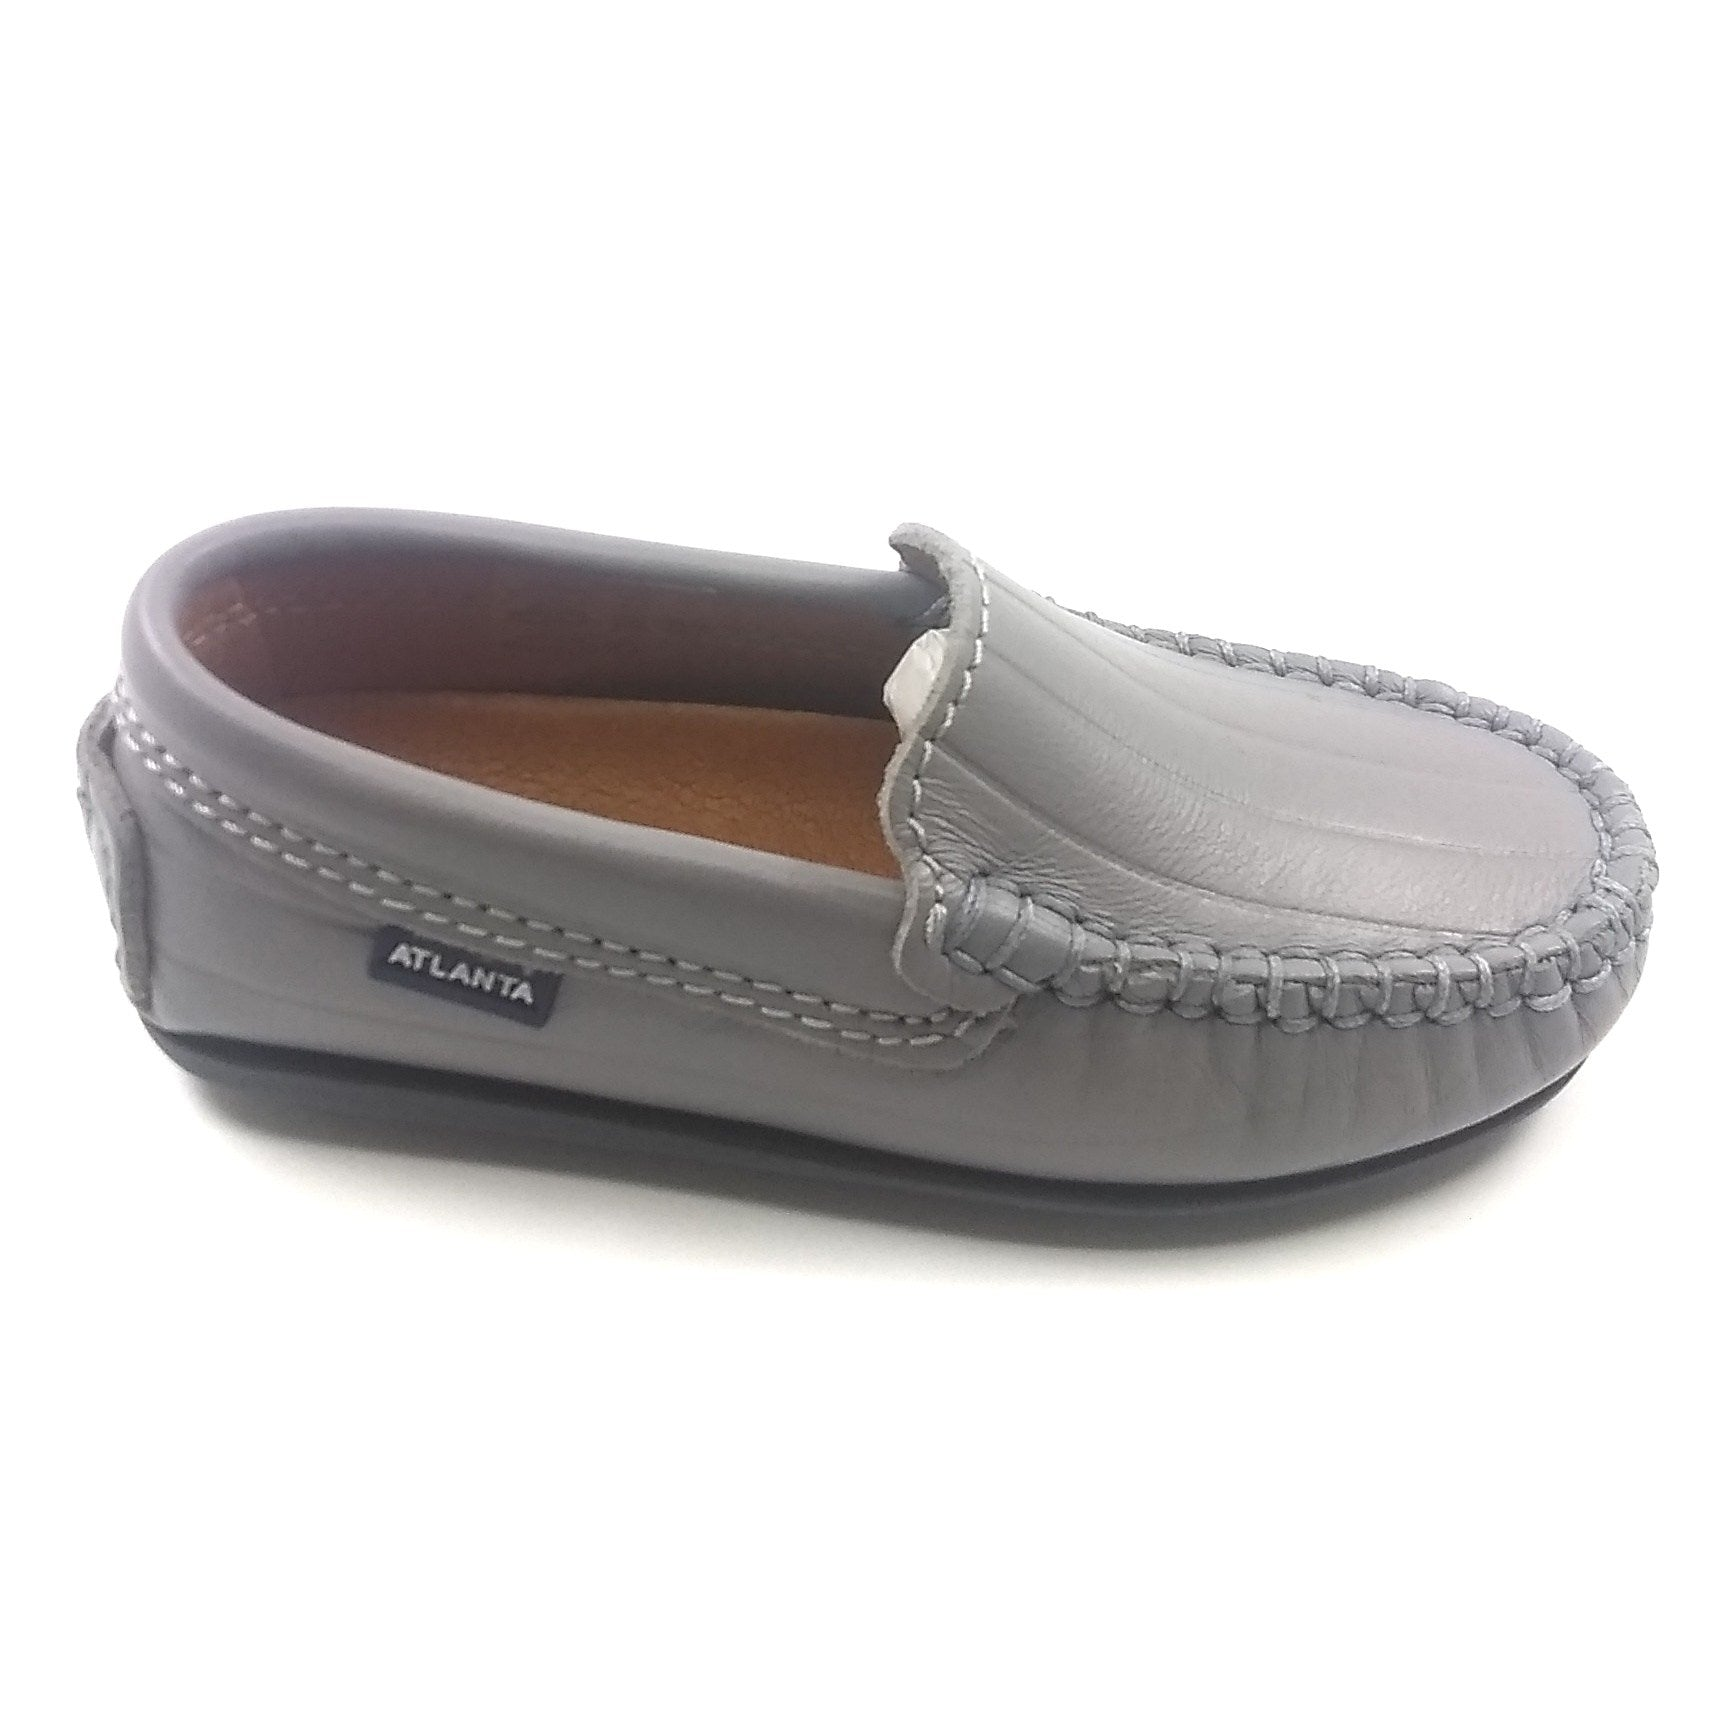 Atlanta Mocassin Gray Loafer